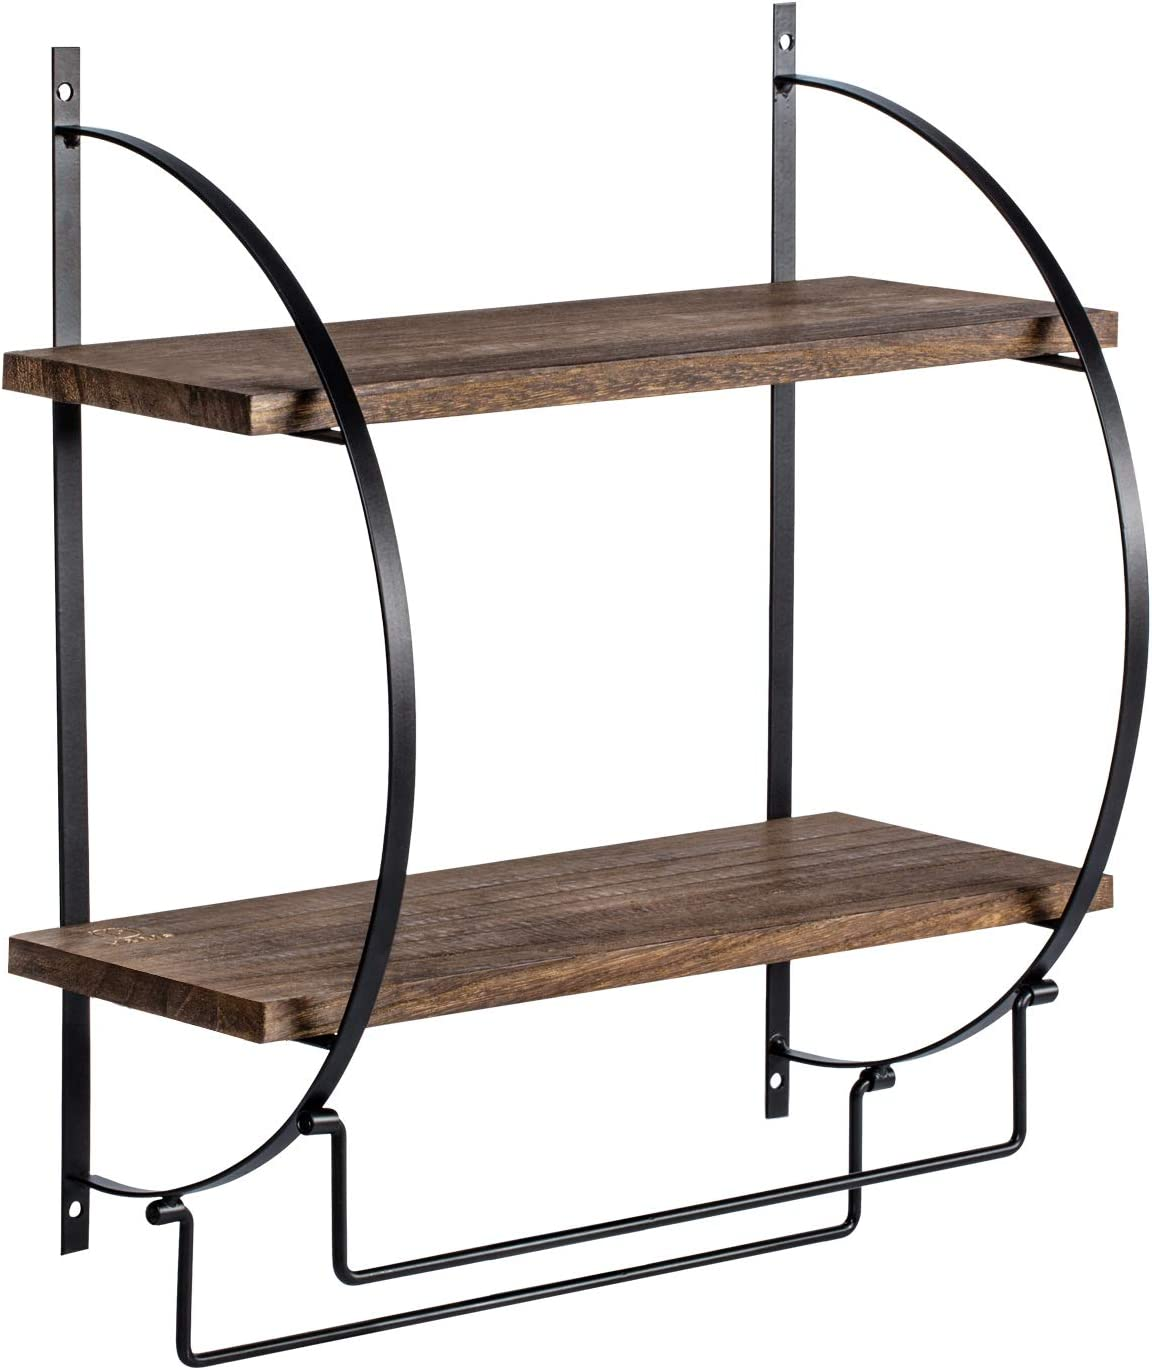 """Y&ME YM 2 Tier Bathroom Storage Shelf with Towel Bars Wall Mounted, Wood Floating Shelf with Towel Rods for Bathroom and Kitchen, 13.4"""" L x 5.5"""" W x 15"""" H"""